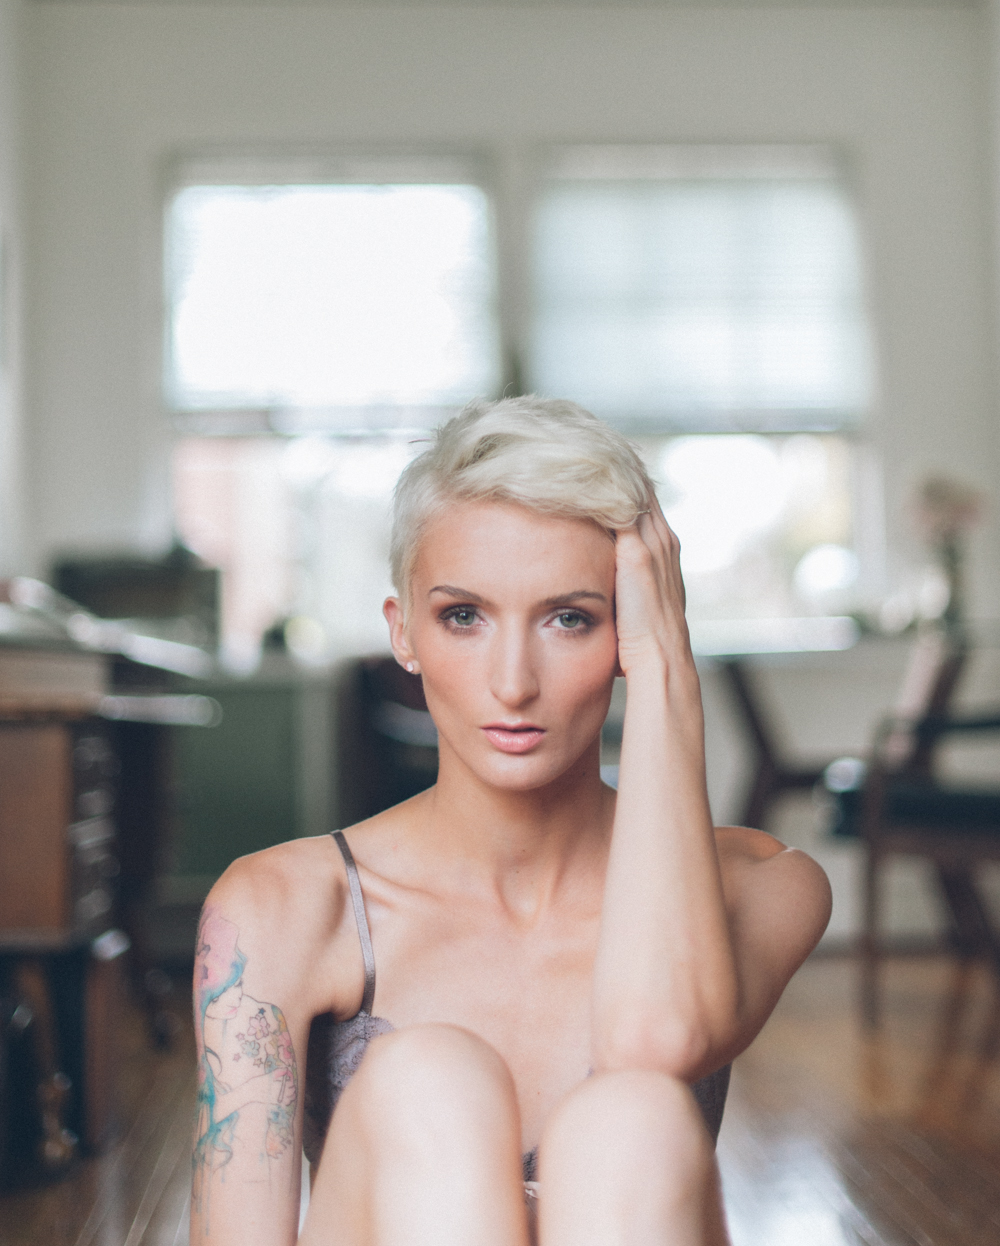 Boudoir portrait of a young woman in front of a window with her hand in her short blond hair.  Photograph by Briana Morrison